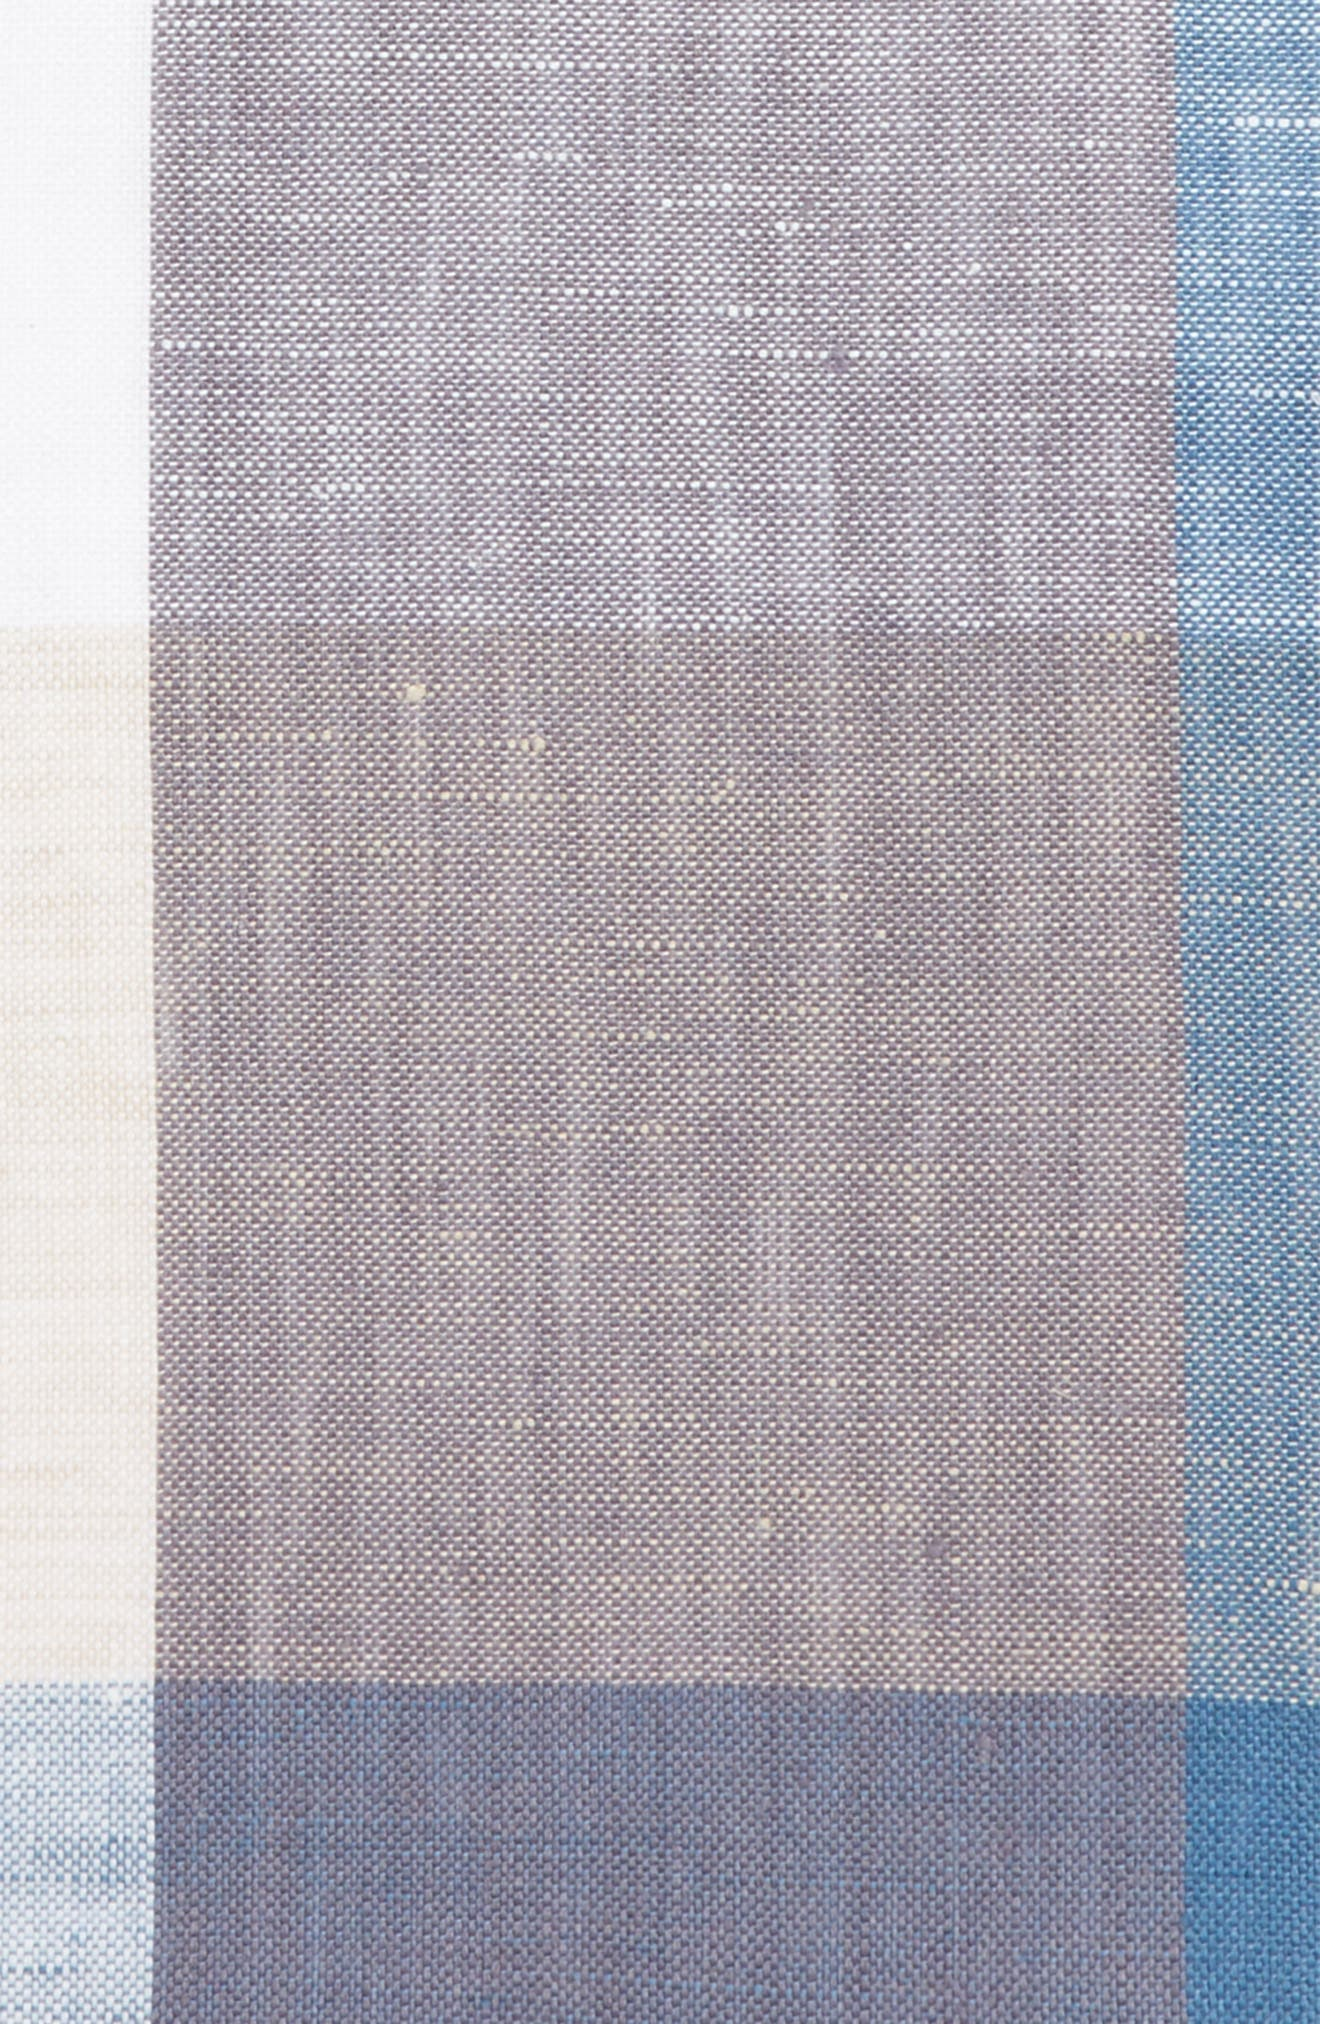 Alternate Image 3  - Armstrong & Wilson Check Linen Pocket Square